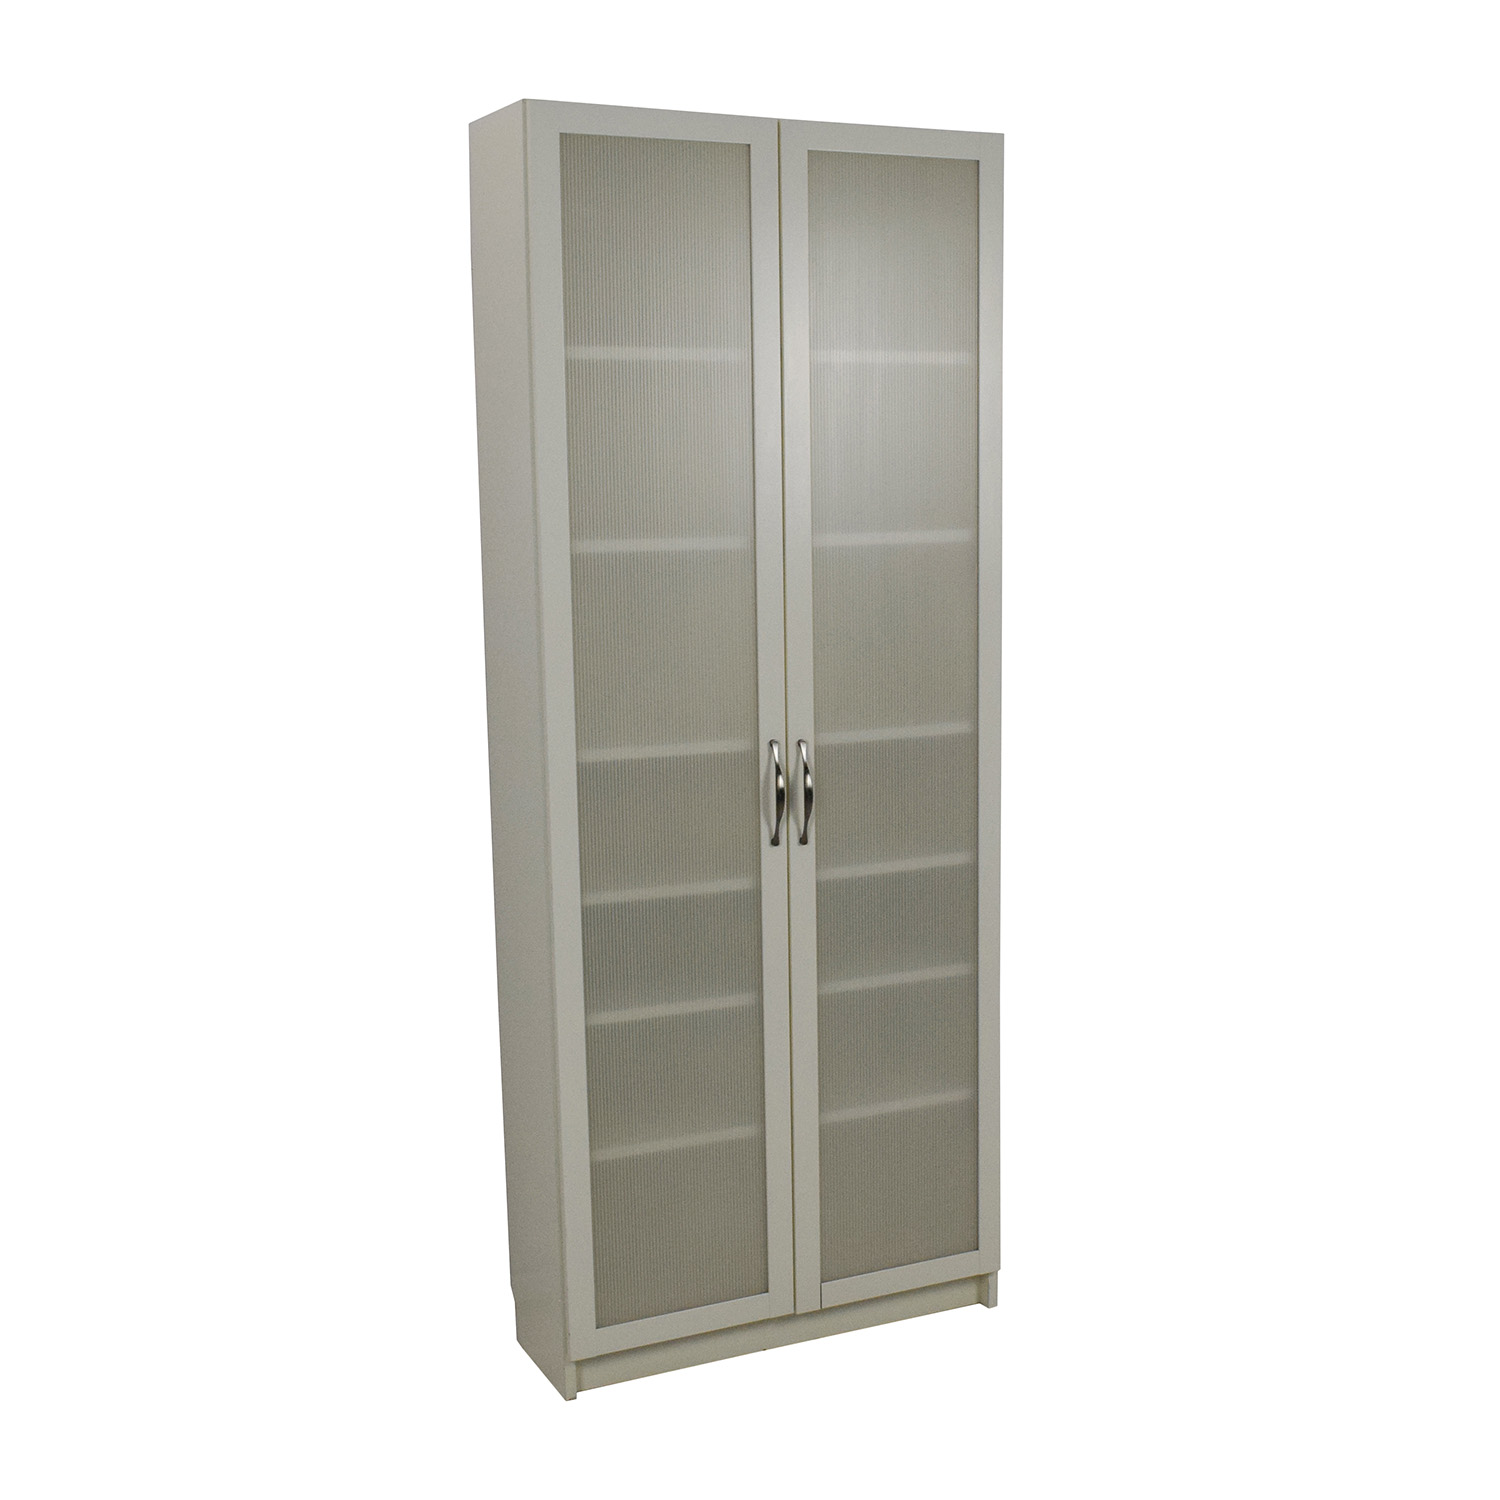 ... IKEA IKEA White Glass Door Cabinet Dimensions ...